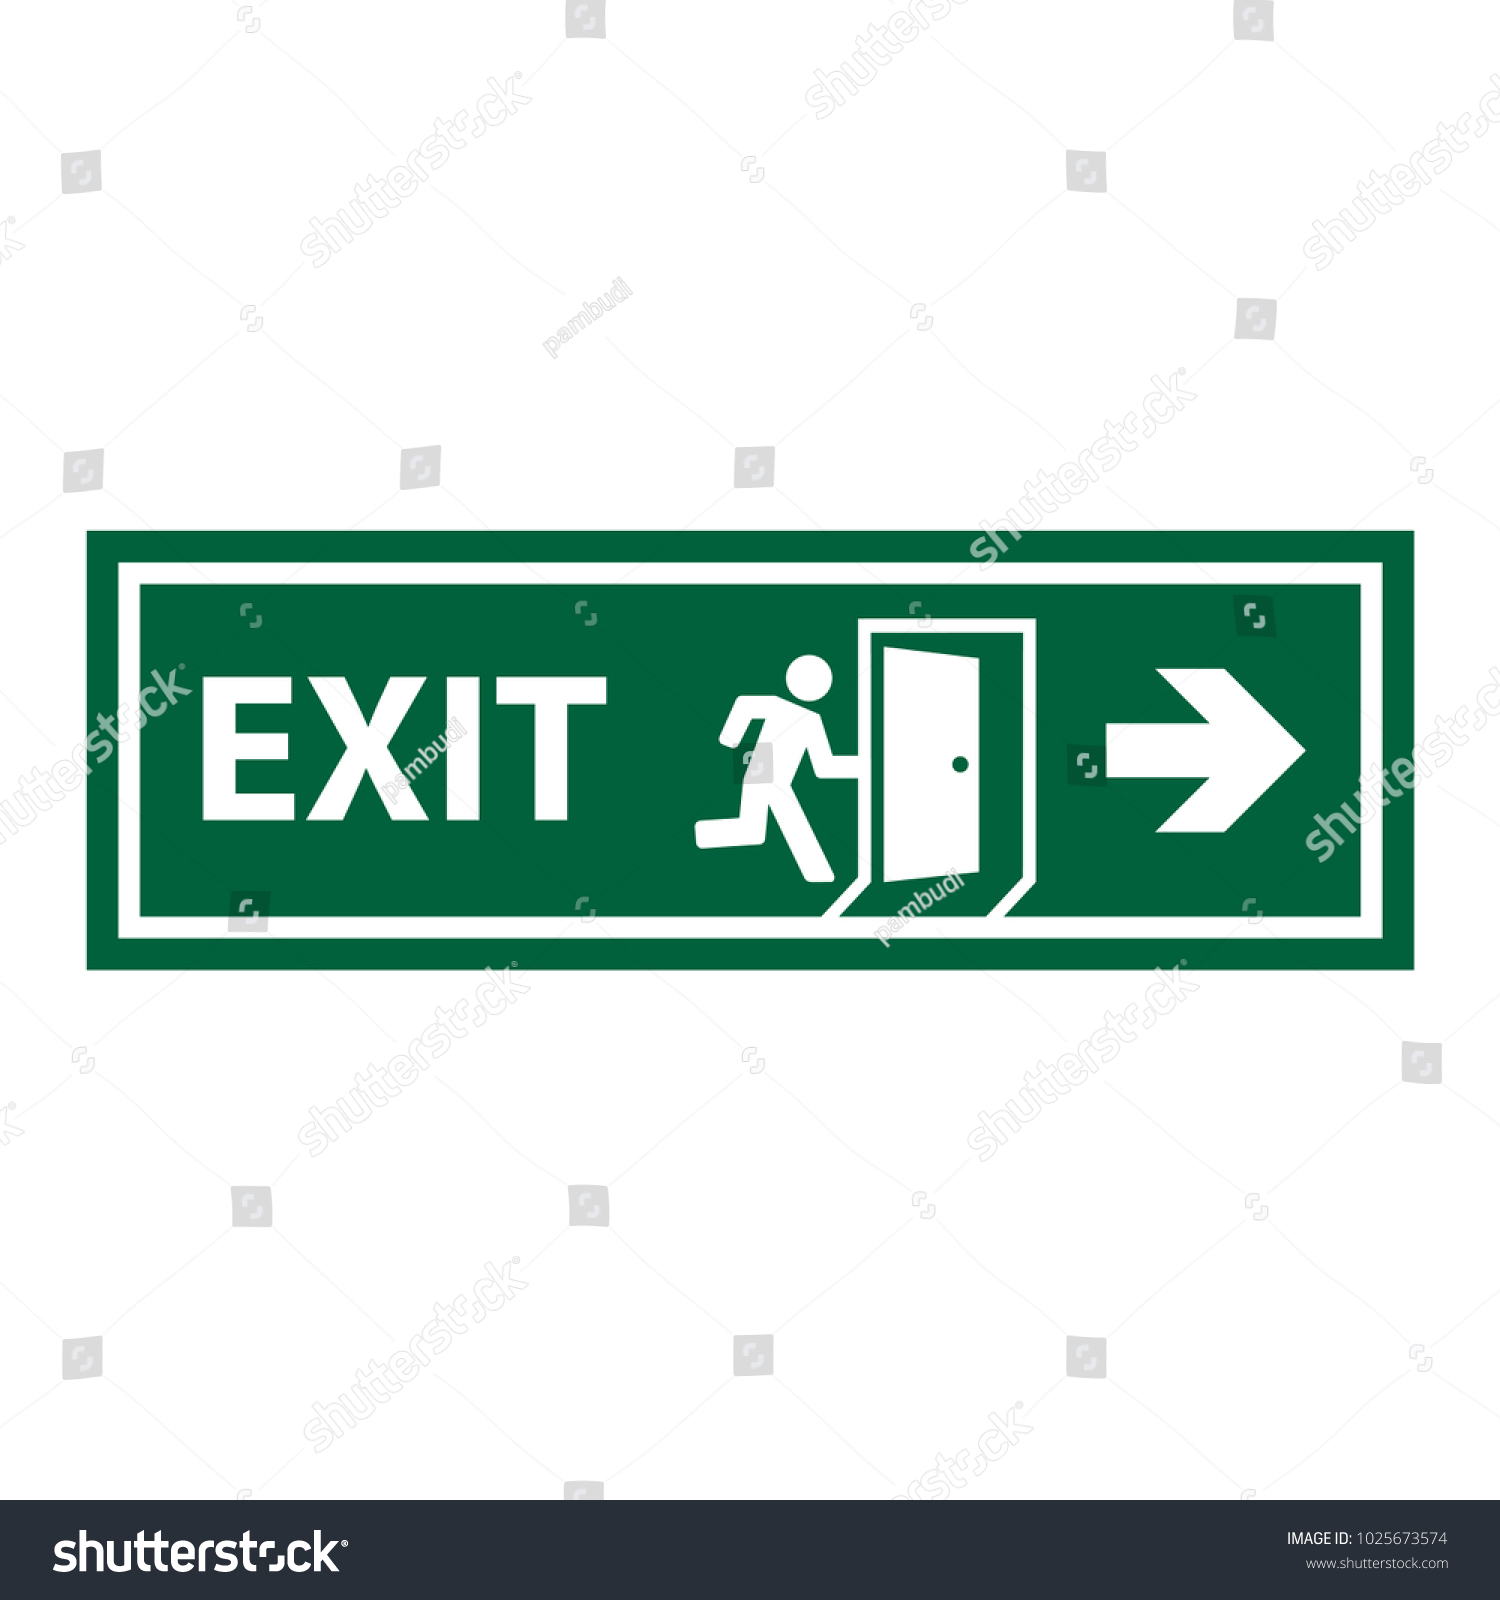 Exit sign symbol trendy flat style stock vector 1025673574 exit sign symbol in trendy flat style buycottarizona Images